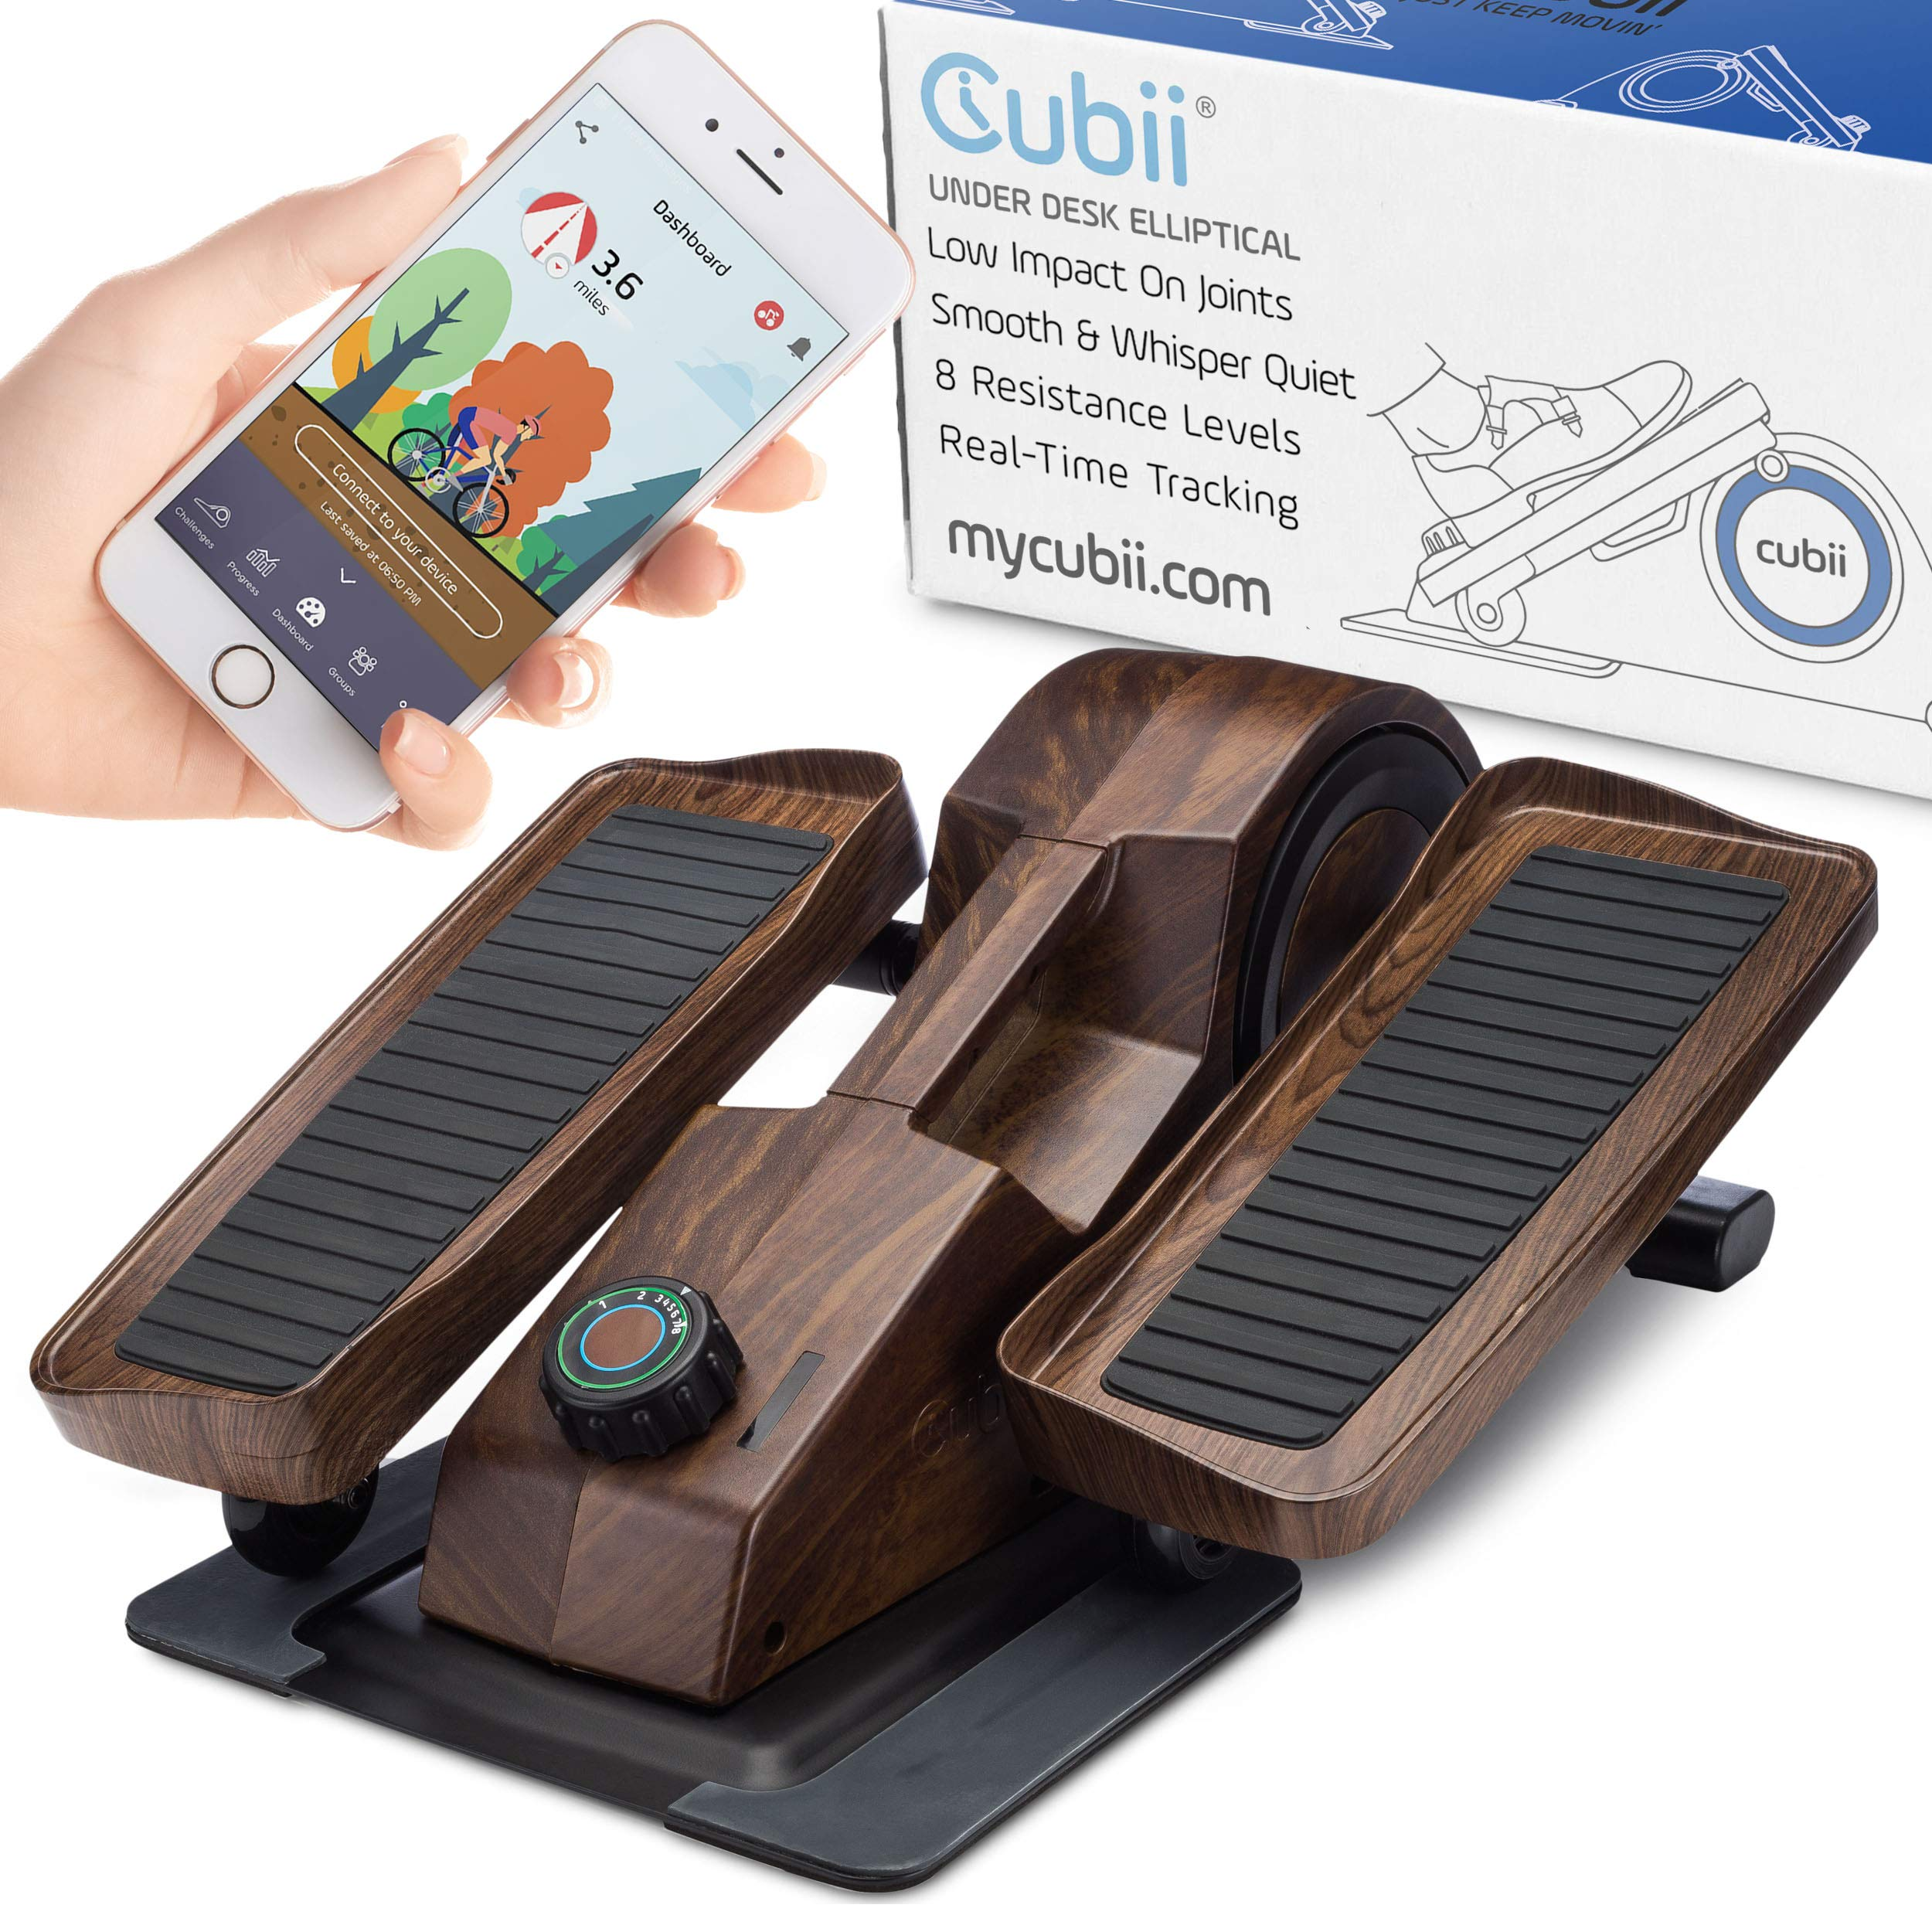 Cubii Desk Elliptical, Bluetooth Enabled, Sync with Fitbit & Apple HealthKit, Premium Wood Finish, Easy Assembly, Quiet